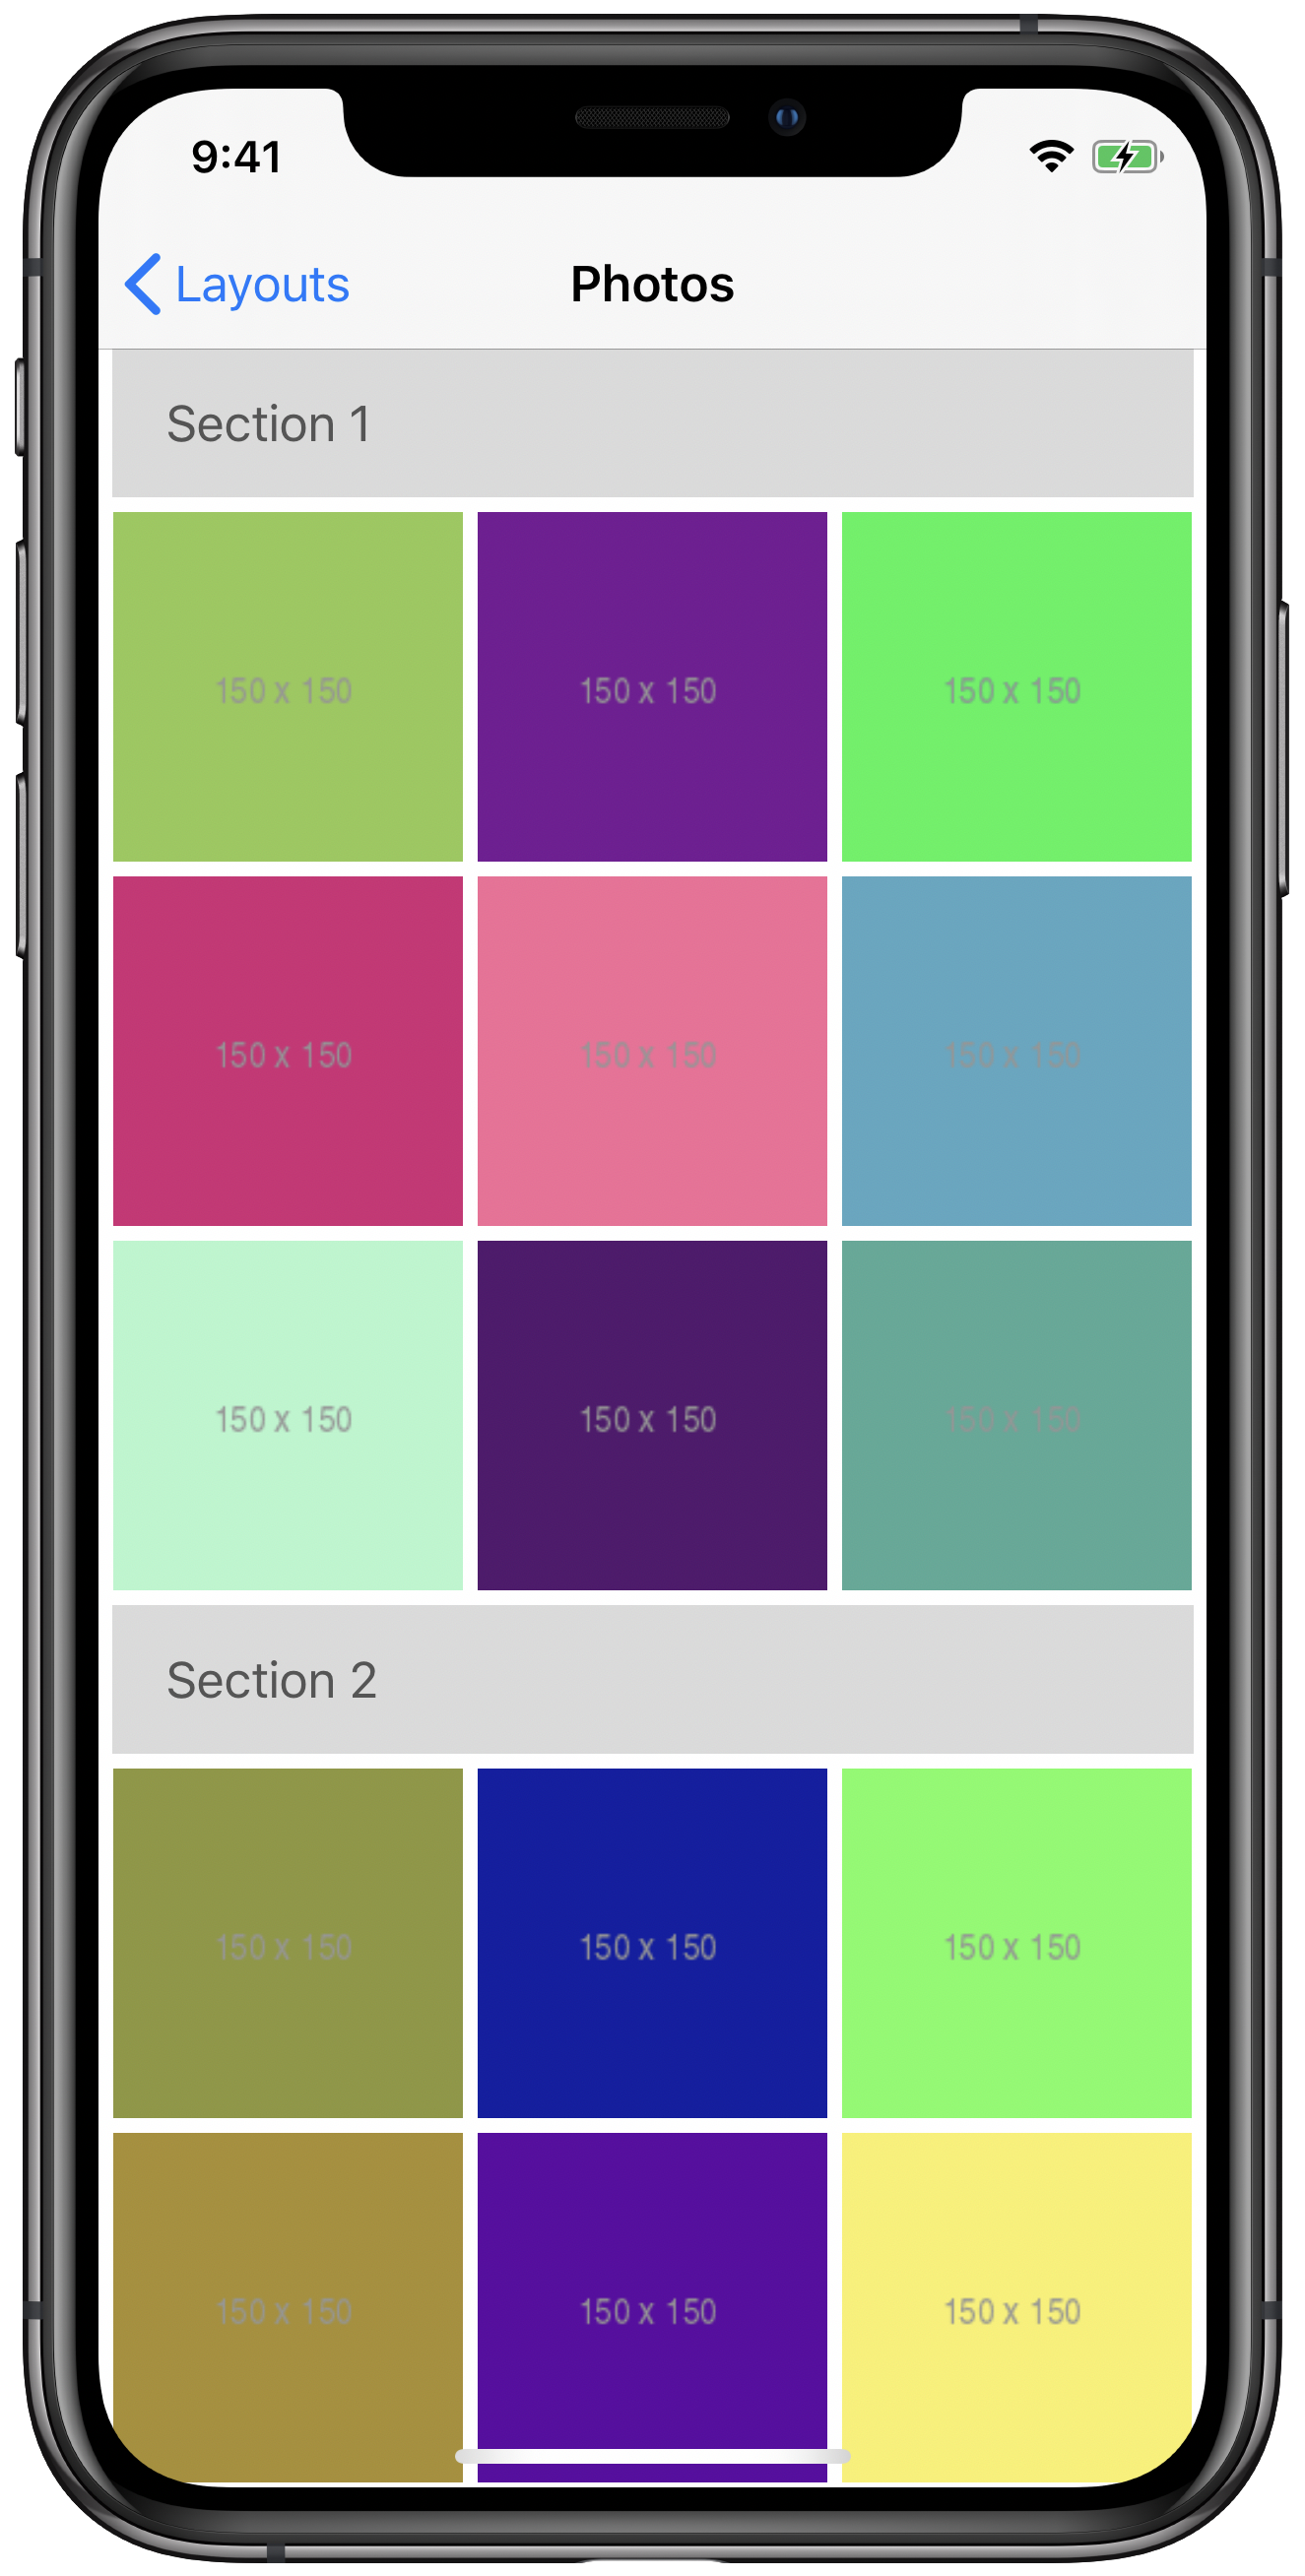 iPhone simulator screenshot showing a compositional layout with supplementary header items